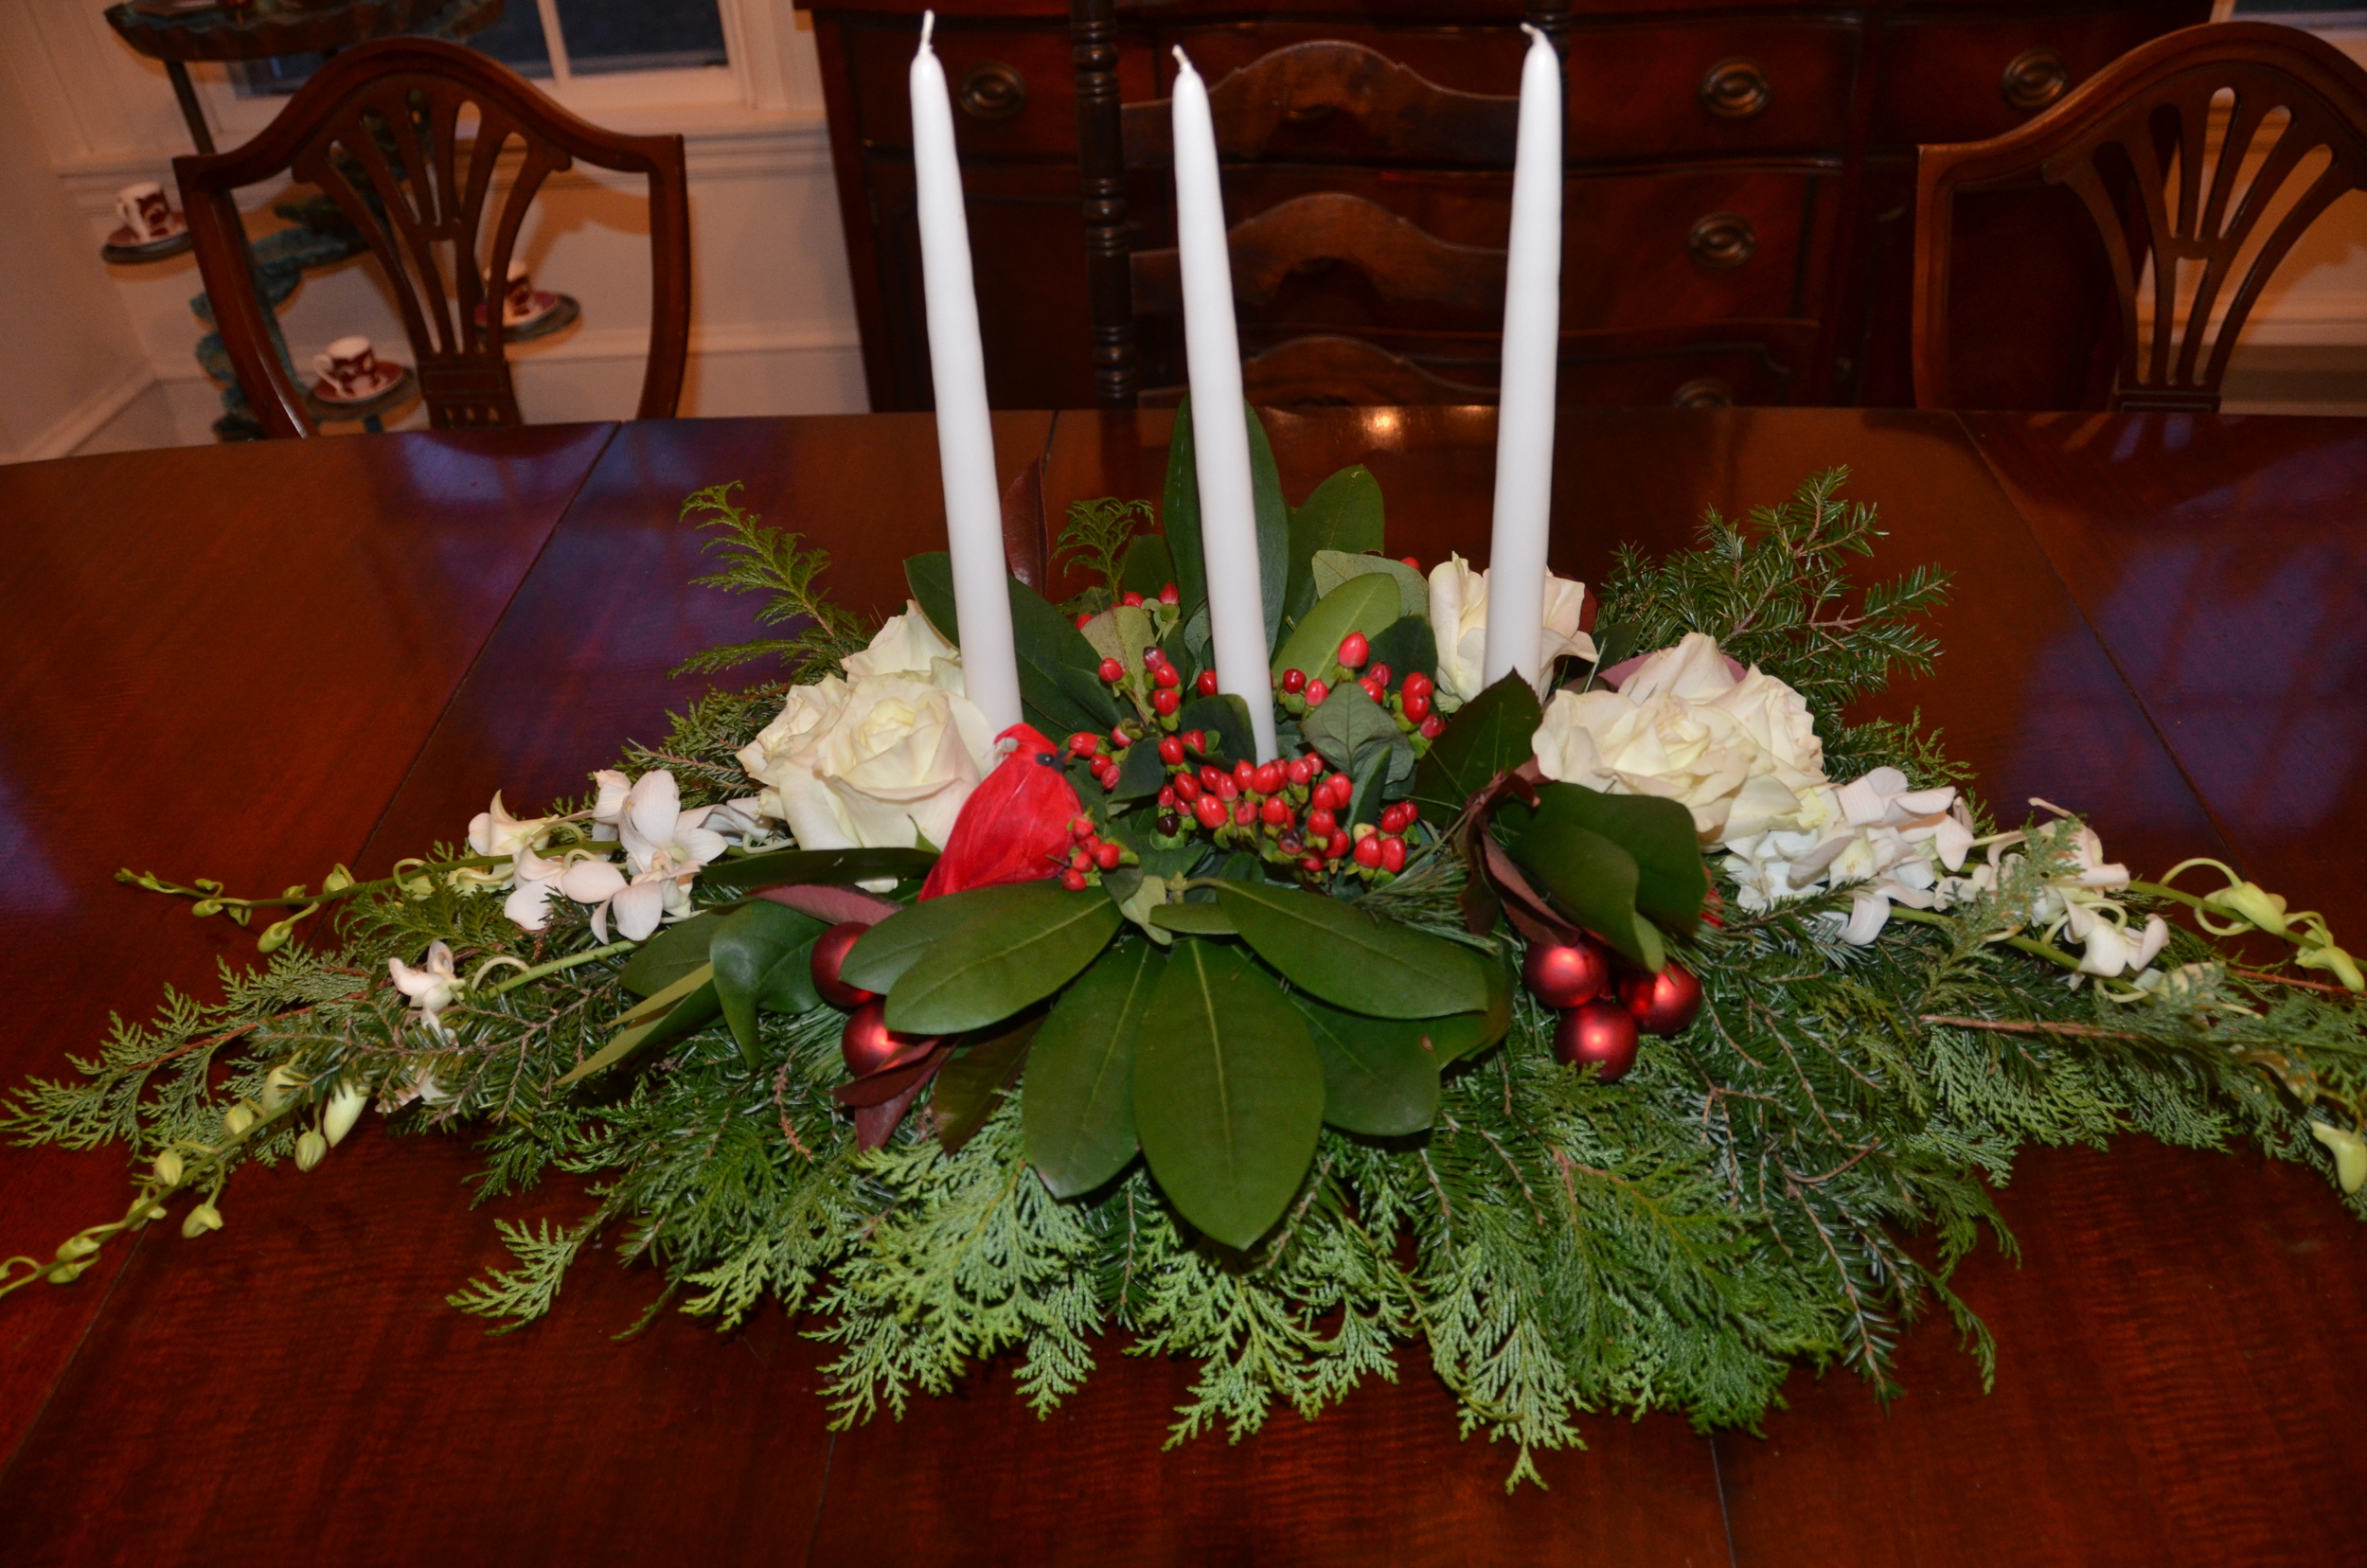 Centerpiece for an elegant table